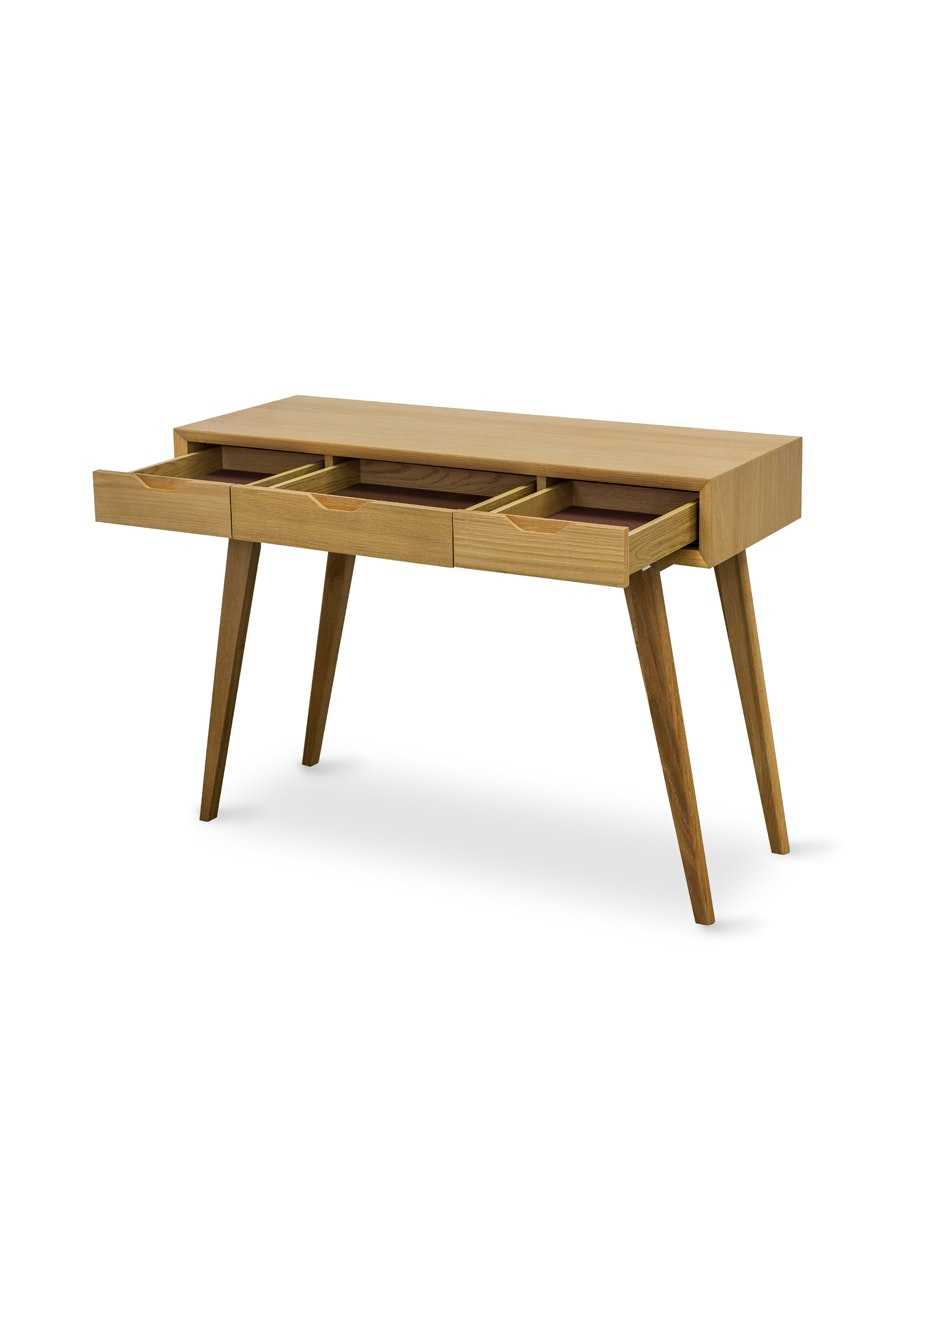 Furniture By Design - Milano Console w/Drw- Light Oak